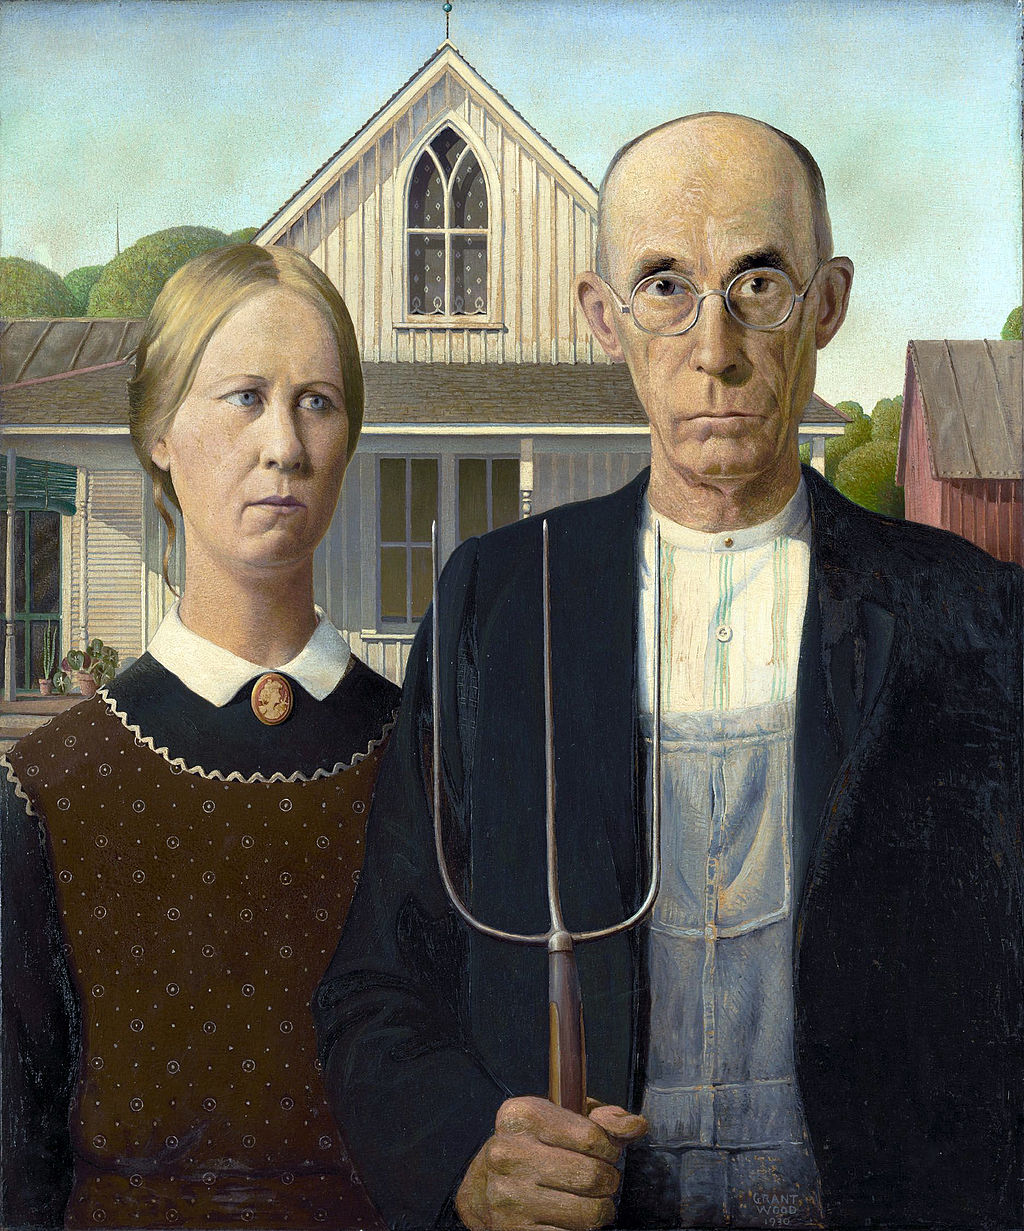 """Grant Wood, American Gothic, 1930, oil on beaver board, 30.7"""" x 25.7"""", The Art Institute of Chicago, Public Domain via Wikimedia Commons."""